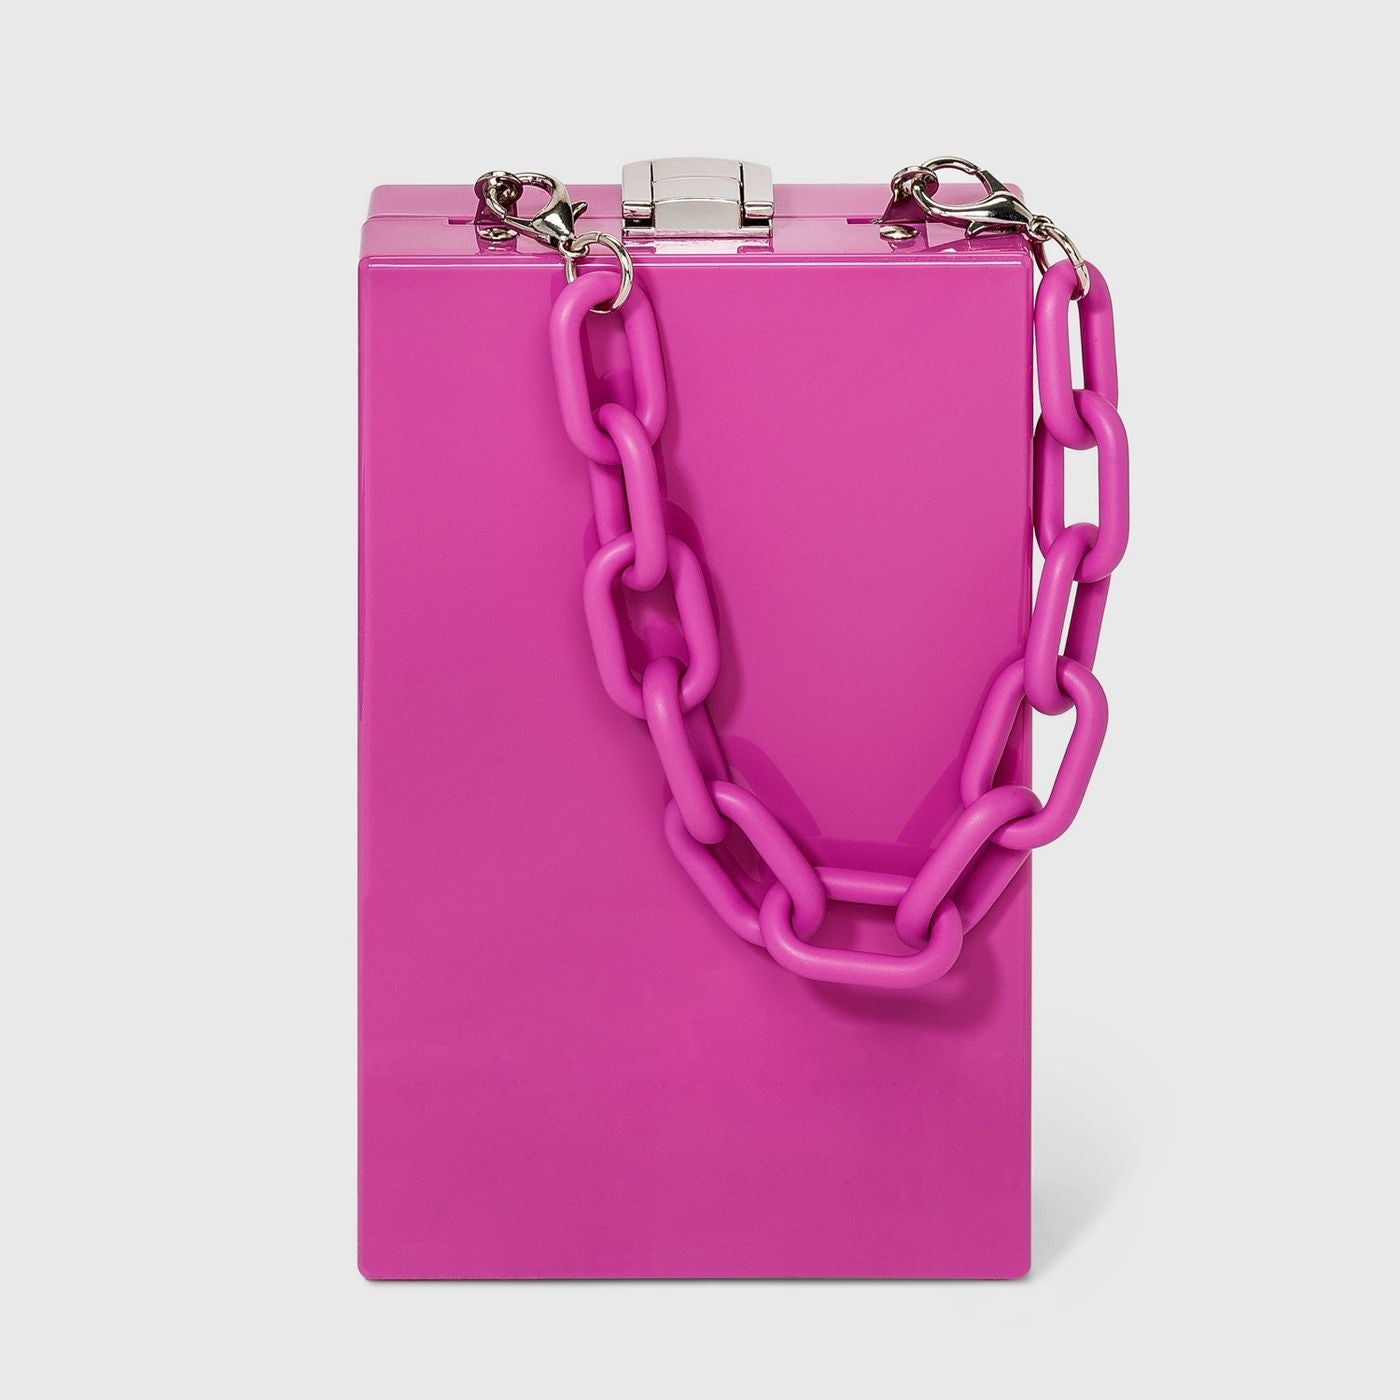 rectangular purse in bright pink with pink chain handle and silver clasp